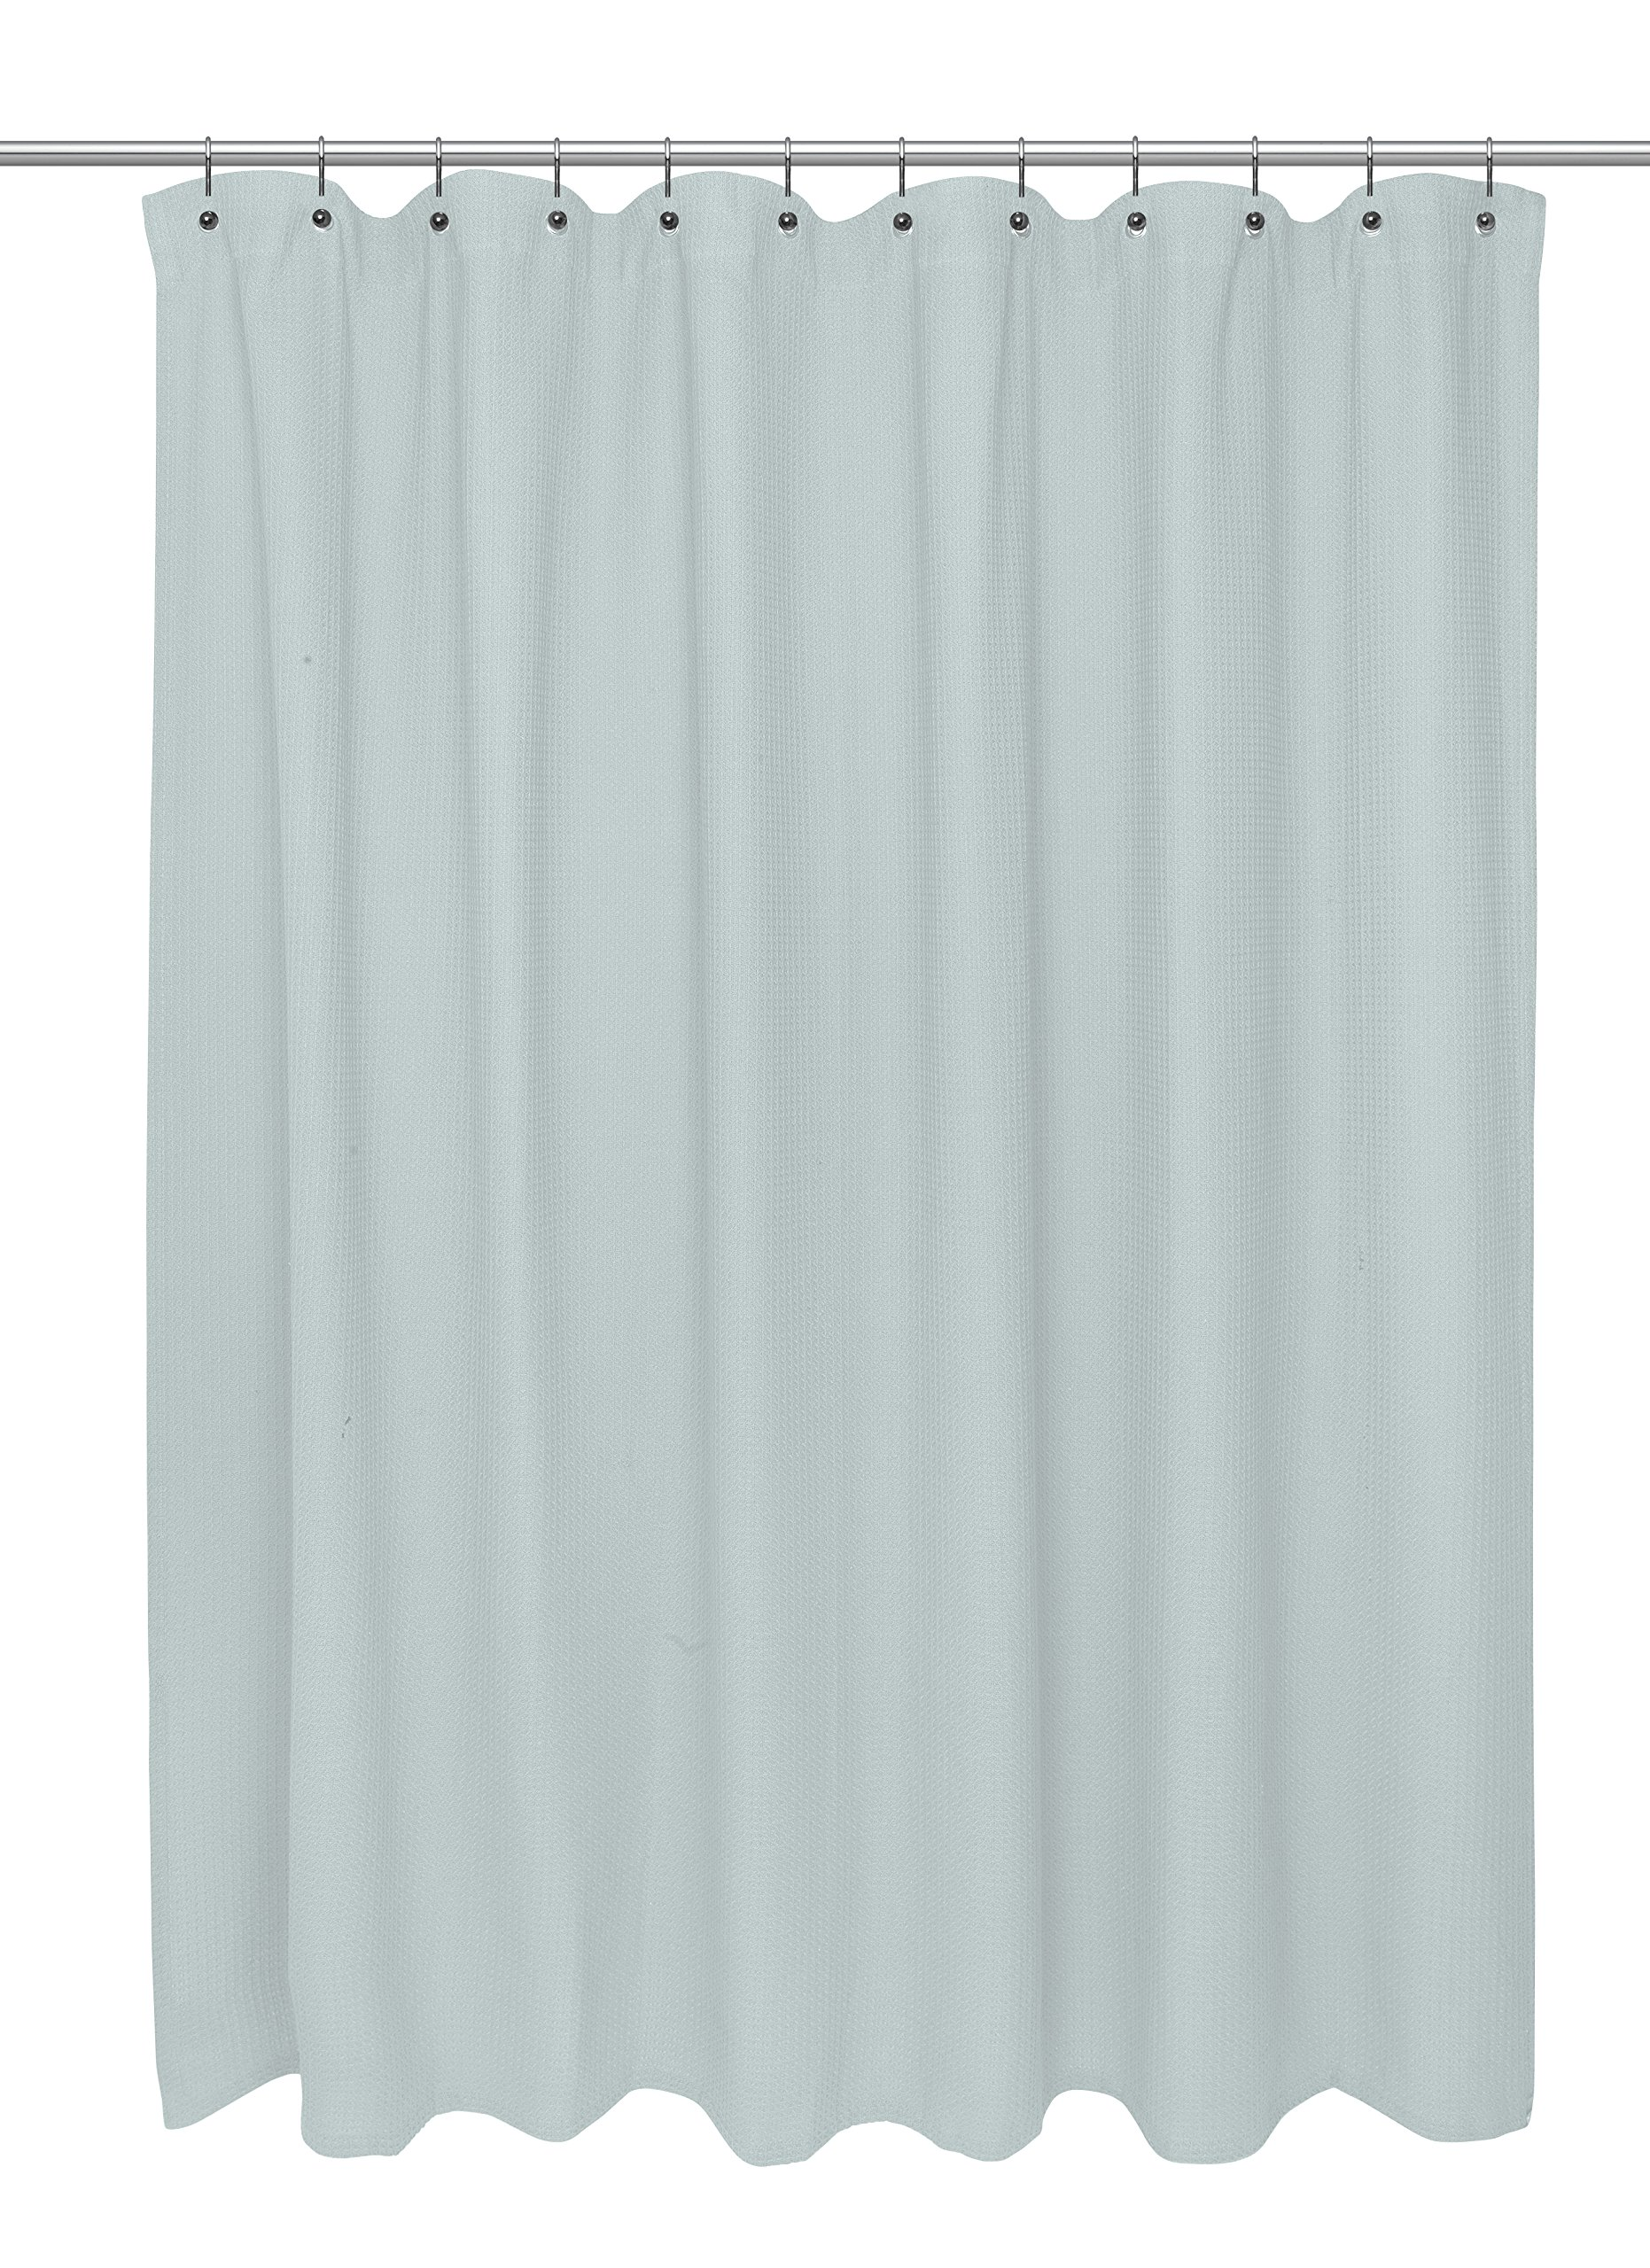 Carnation Home Fashions Standard Size 100% Cotton Waffle Weave Shower Curtain, Spa Blue